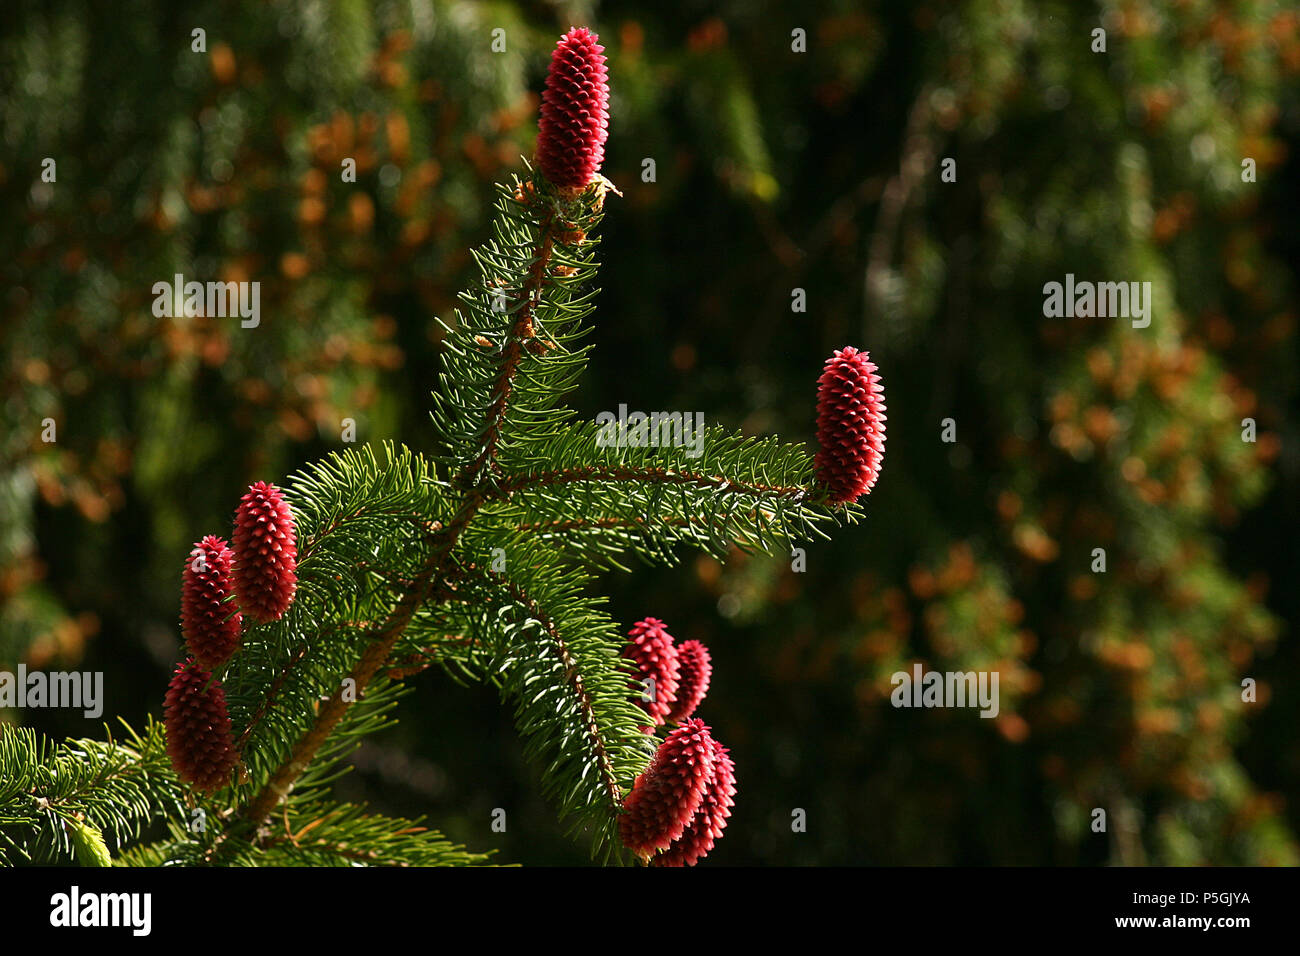 Red pine cones on green branches - Stock Image